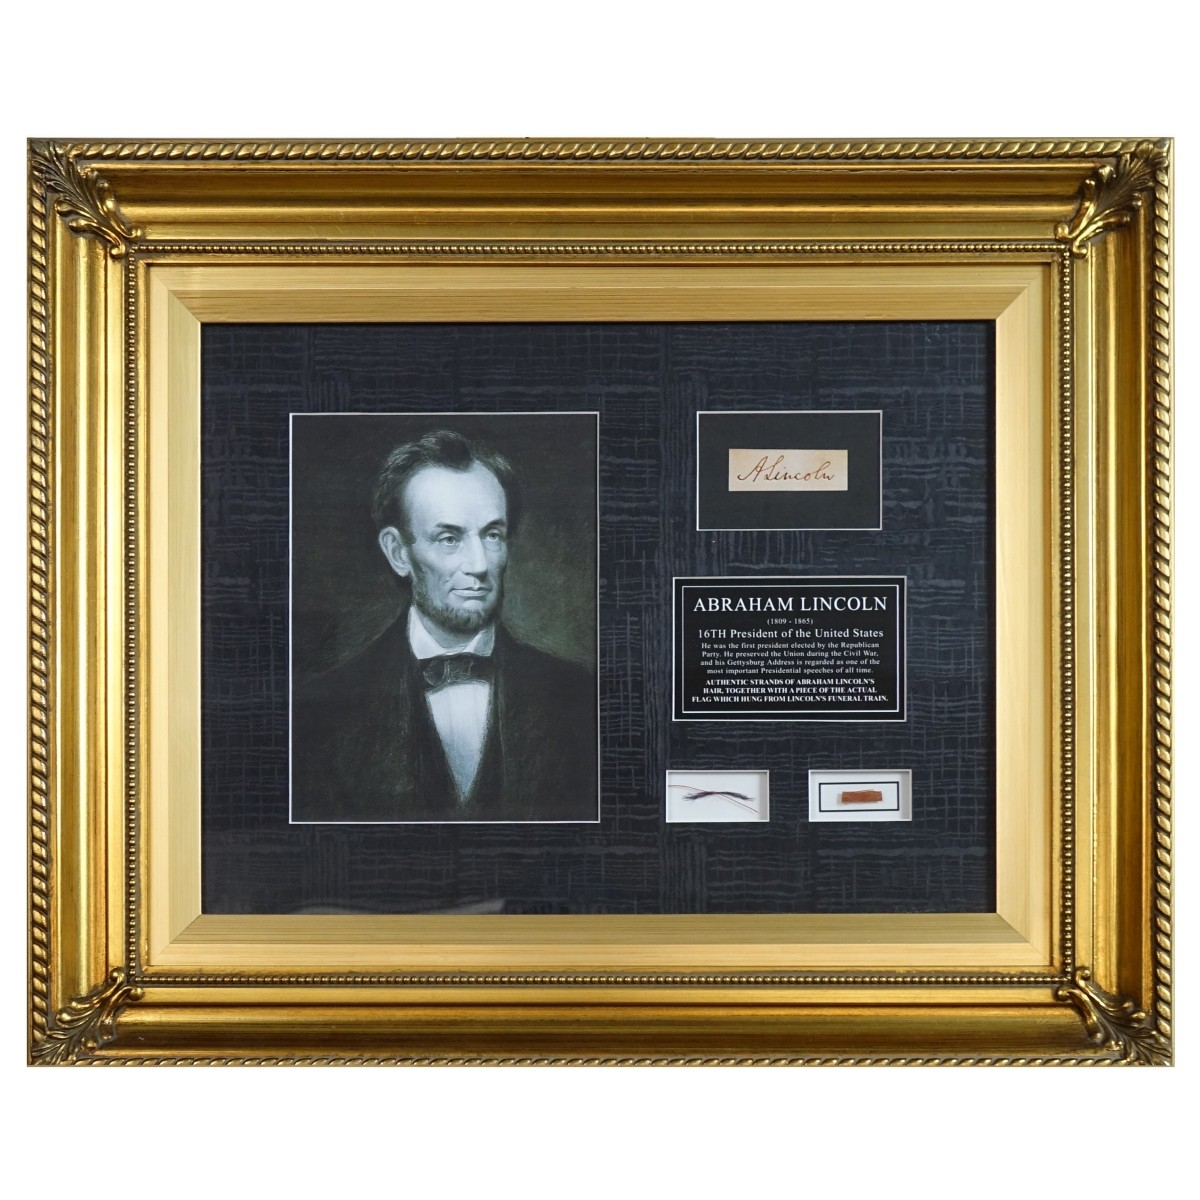 Abraham Lincoln Artifacts